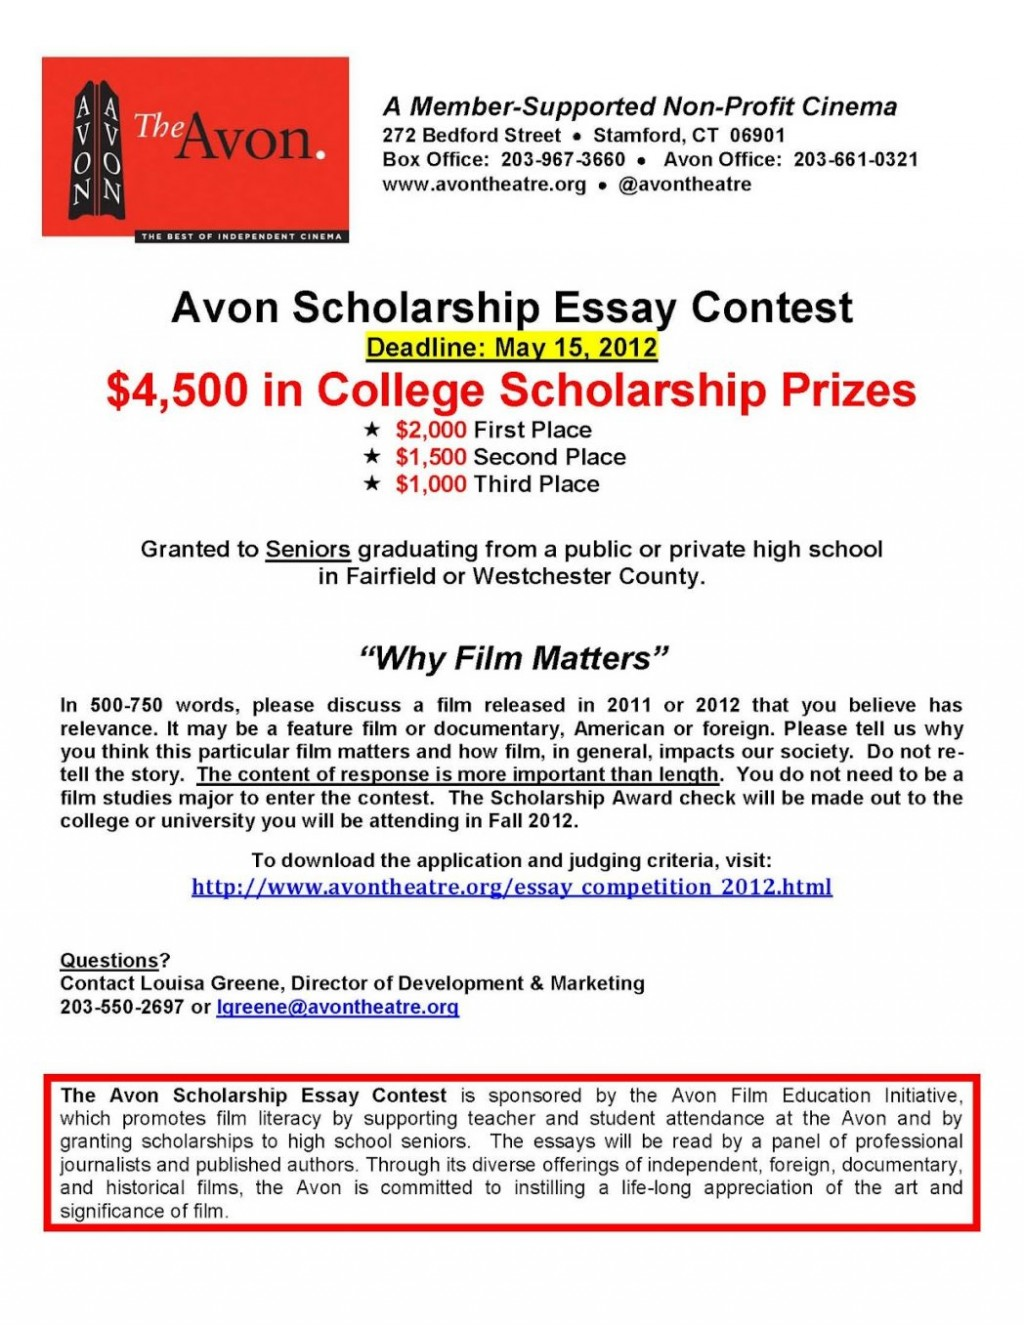 003 Easy Scholarships No Essay Example College Scholarship Prowler Avonscholarshipessaycontest2012 For High School Students Striking 2019 2018 Large